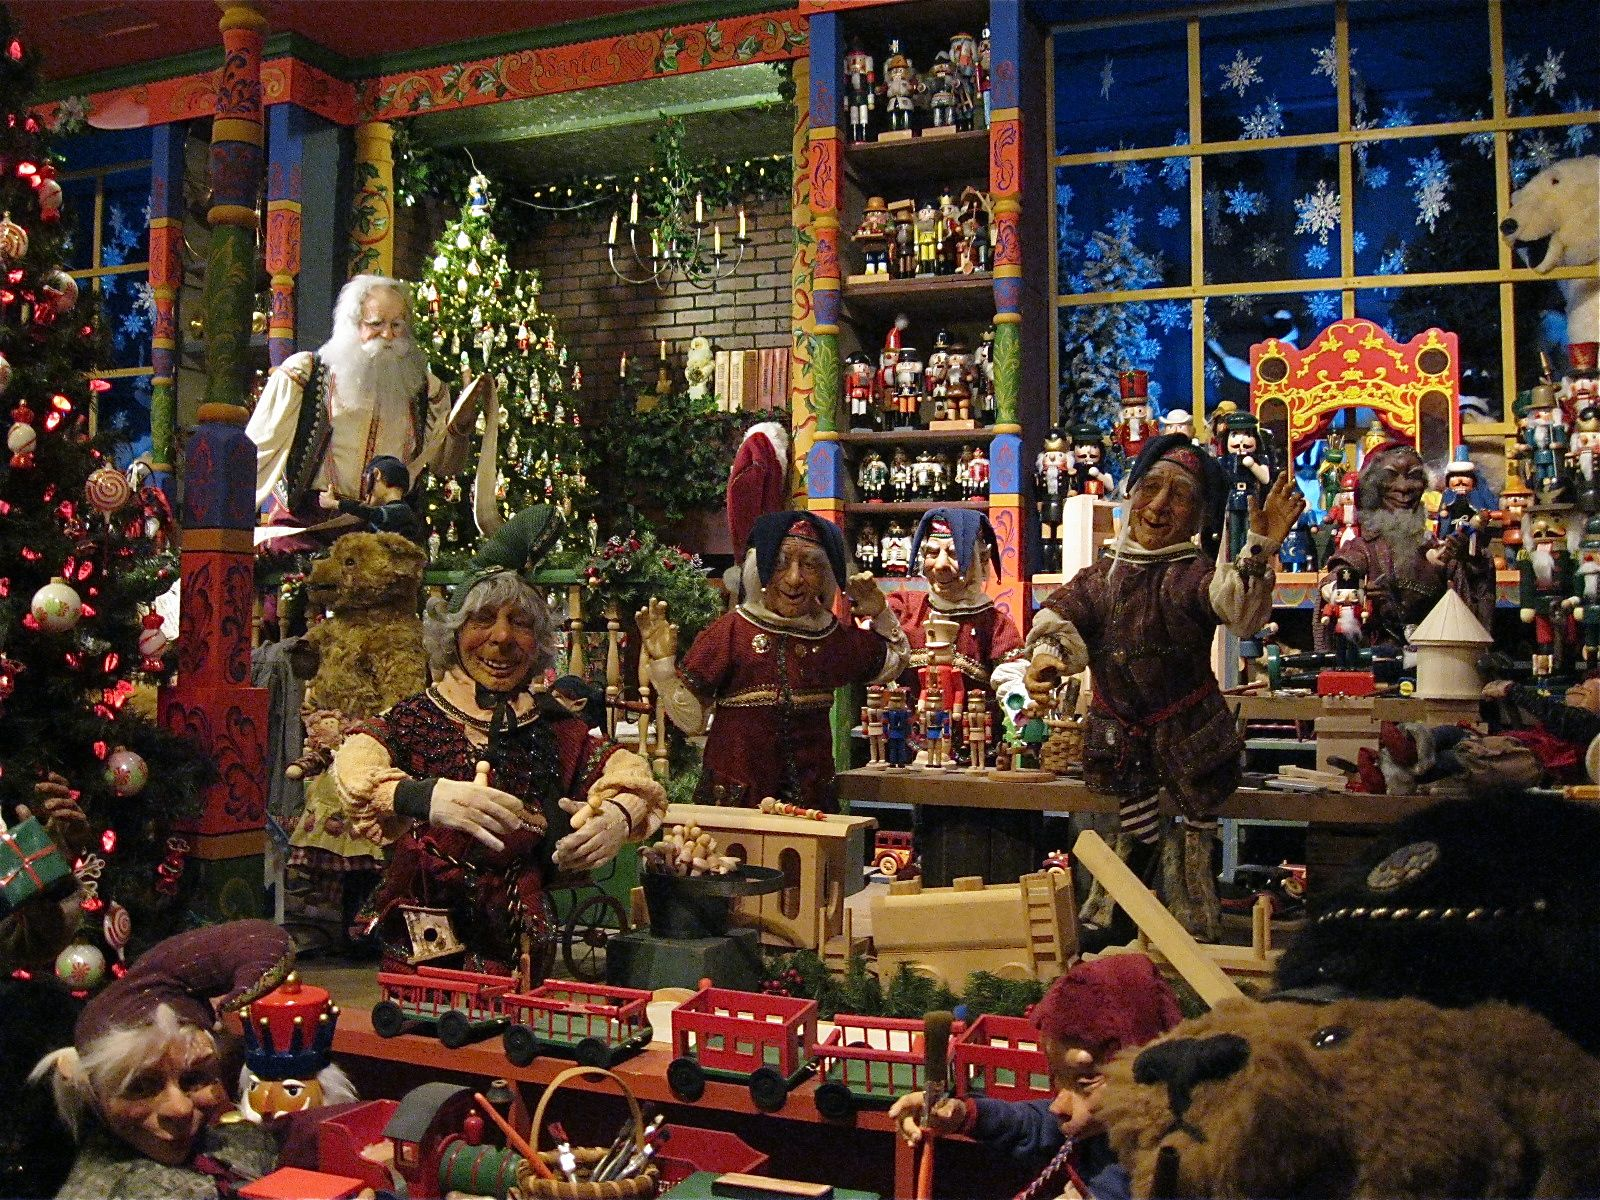 Bring The Kids To The Event Of The Holiday Season At Elves Workshop On December 9th At The Comm Santas Workshop Dollhouse Christmas North Pole Santa S Workshop